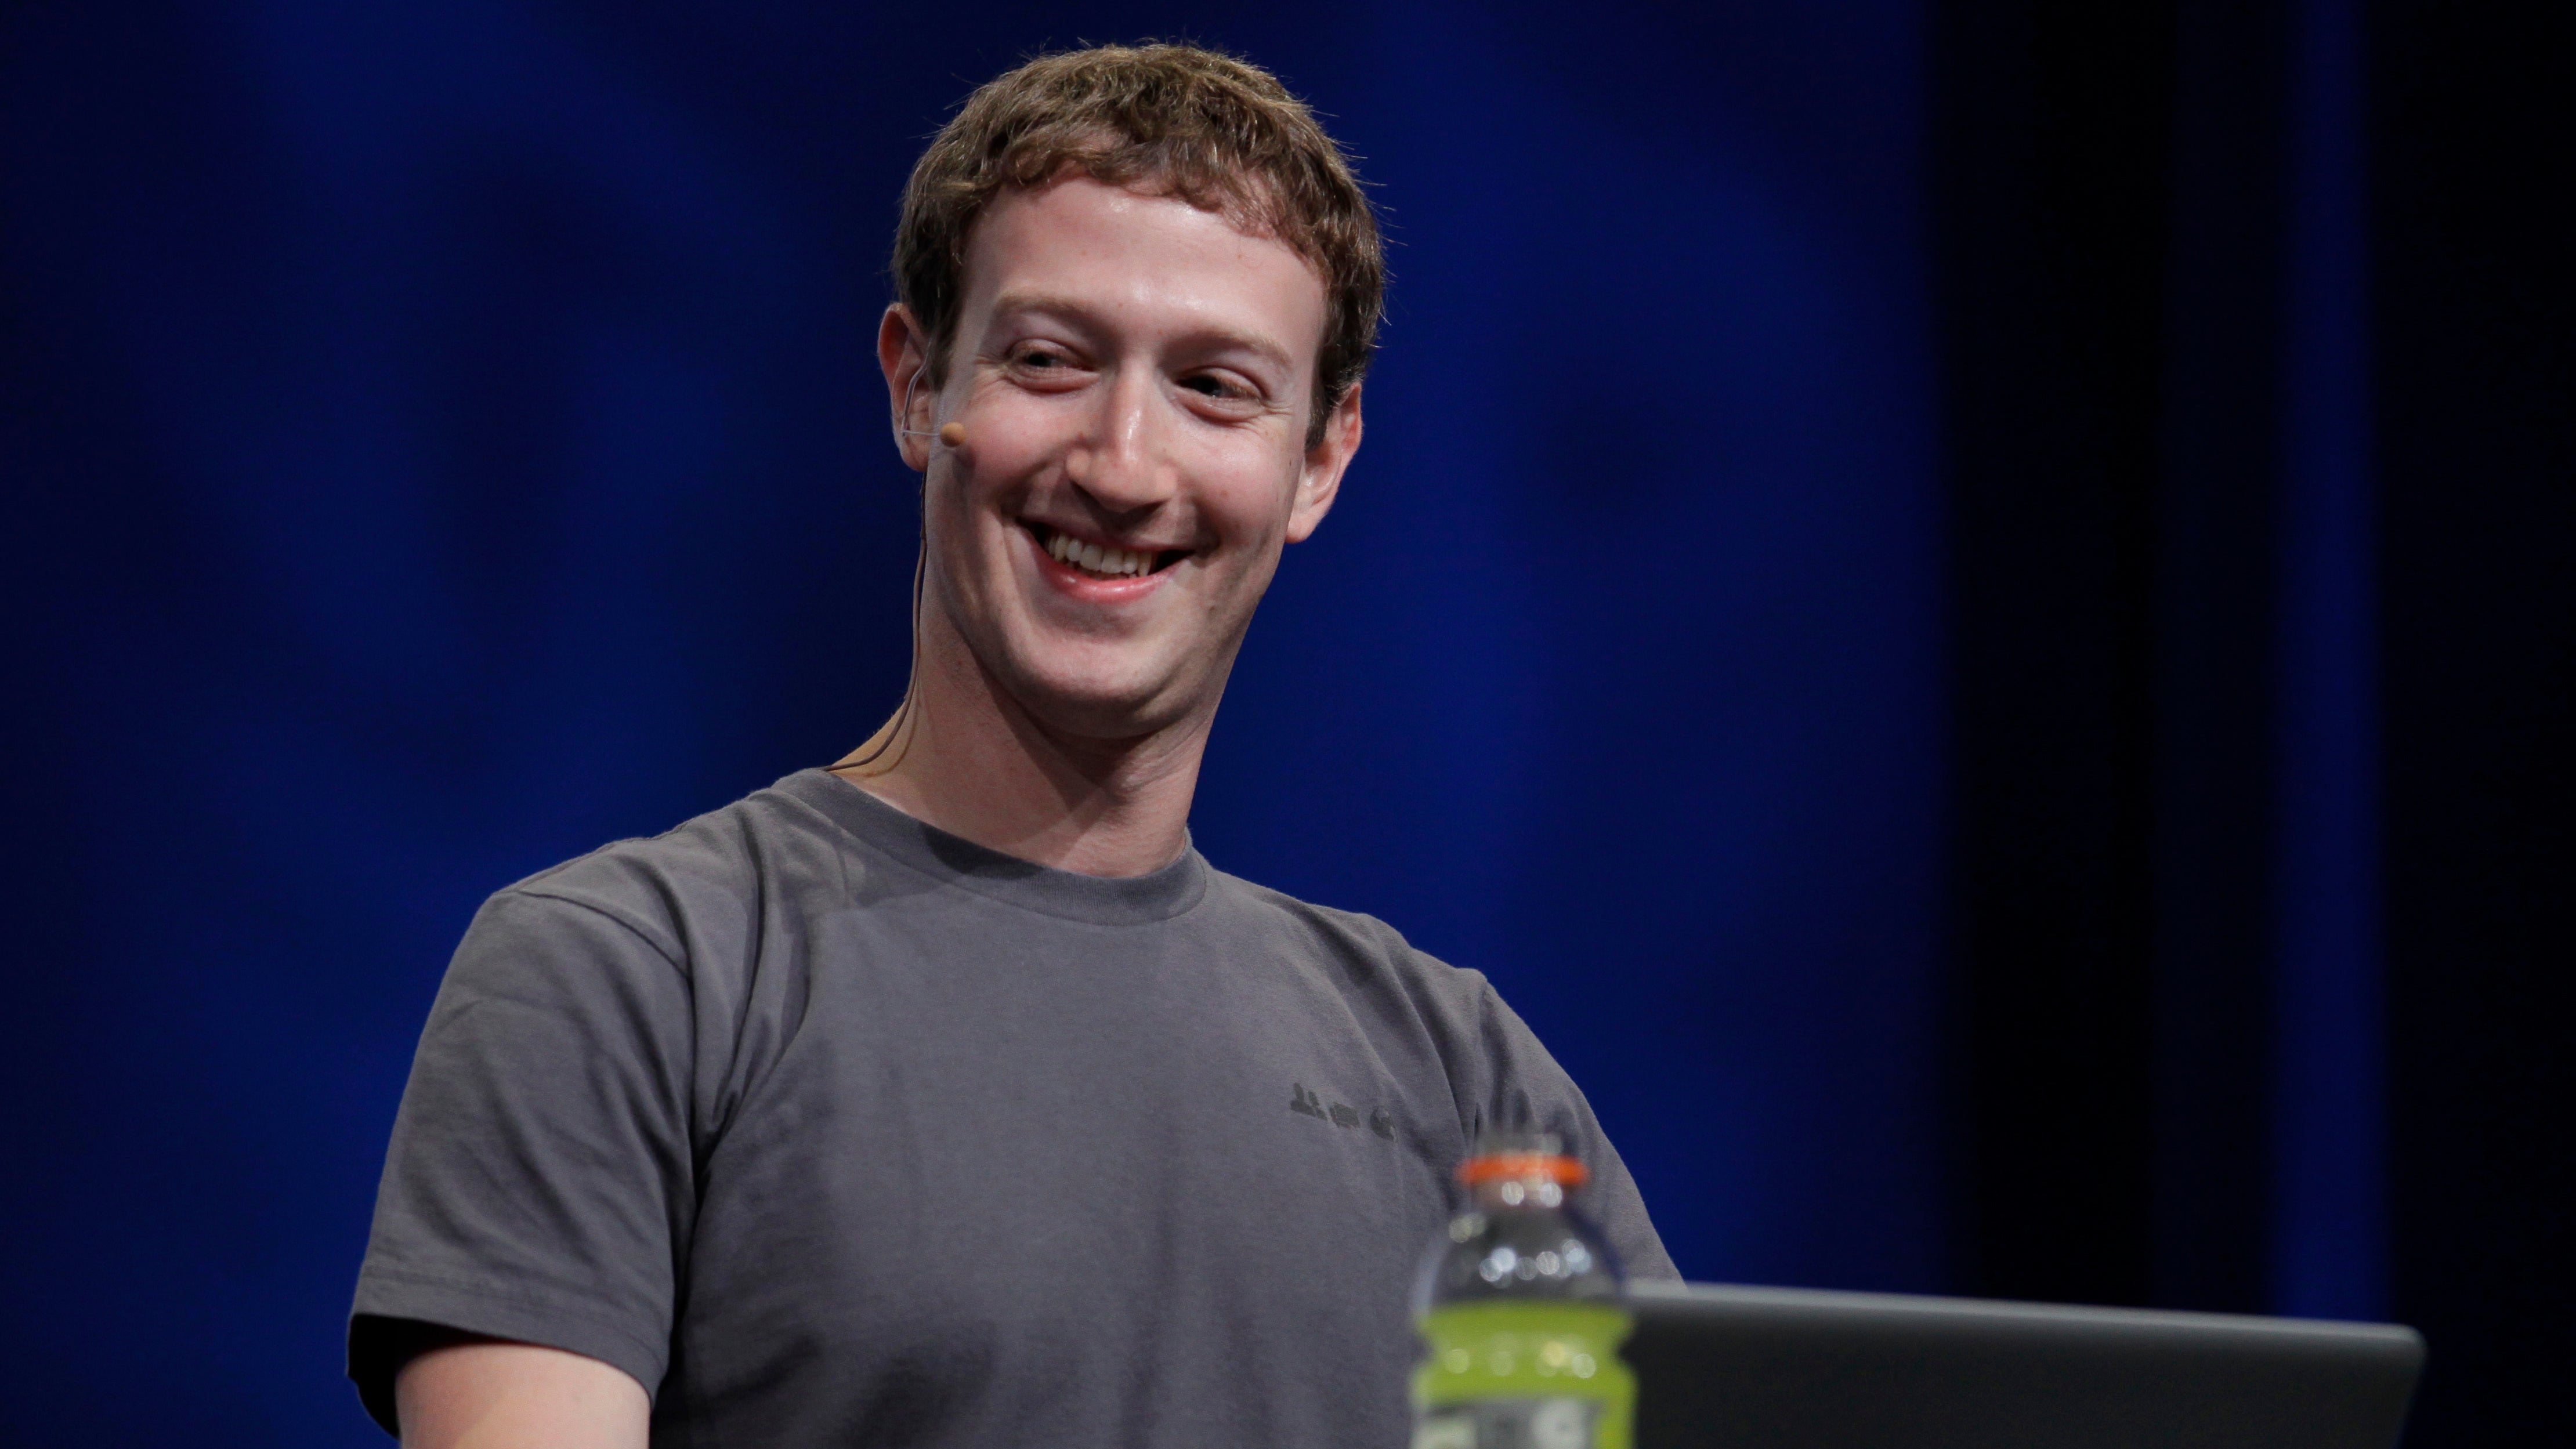 How Much Do You Trust Facebook?[Entirely, A Lot, Somewhat, Barely, Not At All]